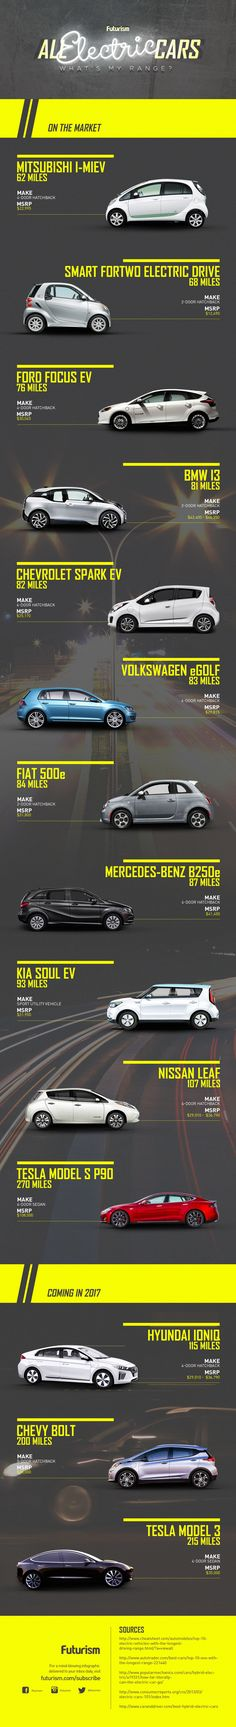 Ready to go electric? Here are the cars that will give you the least—and most—range anxiety.   http://futurism.com/images/all-electric-cars-whats-my-range-infographic/?utm_campaign=coschedule&utm_source=pinterest&utm_medium=Futurism&utm_content=All%20Electric%20Cars%3A%20What%27s%20My%20Range%3F%20%5BINFOGRAPHIC%5D